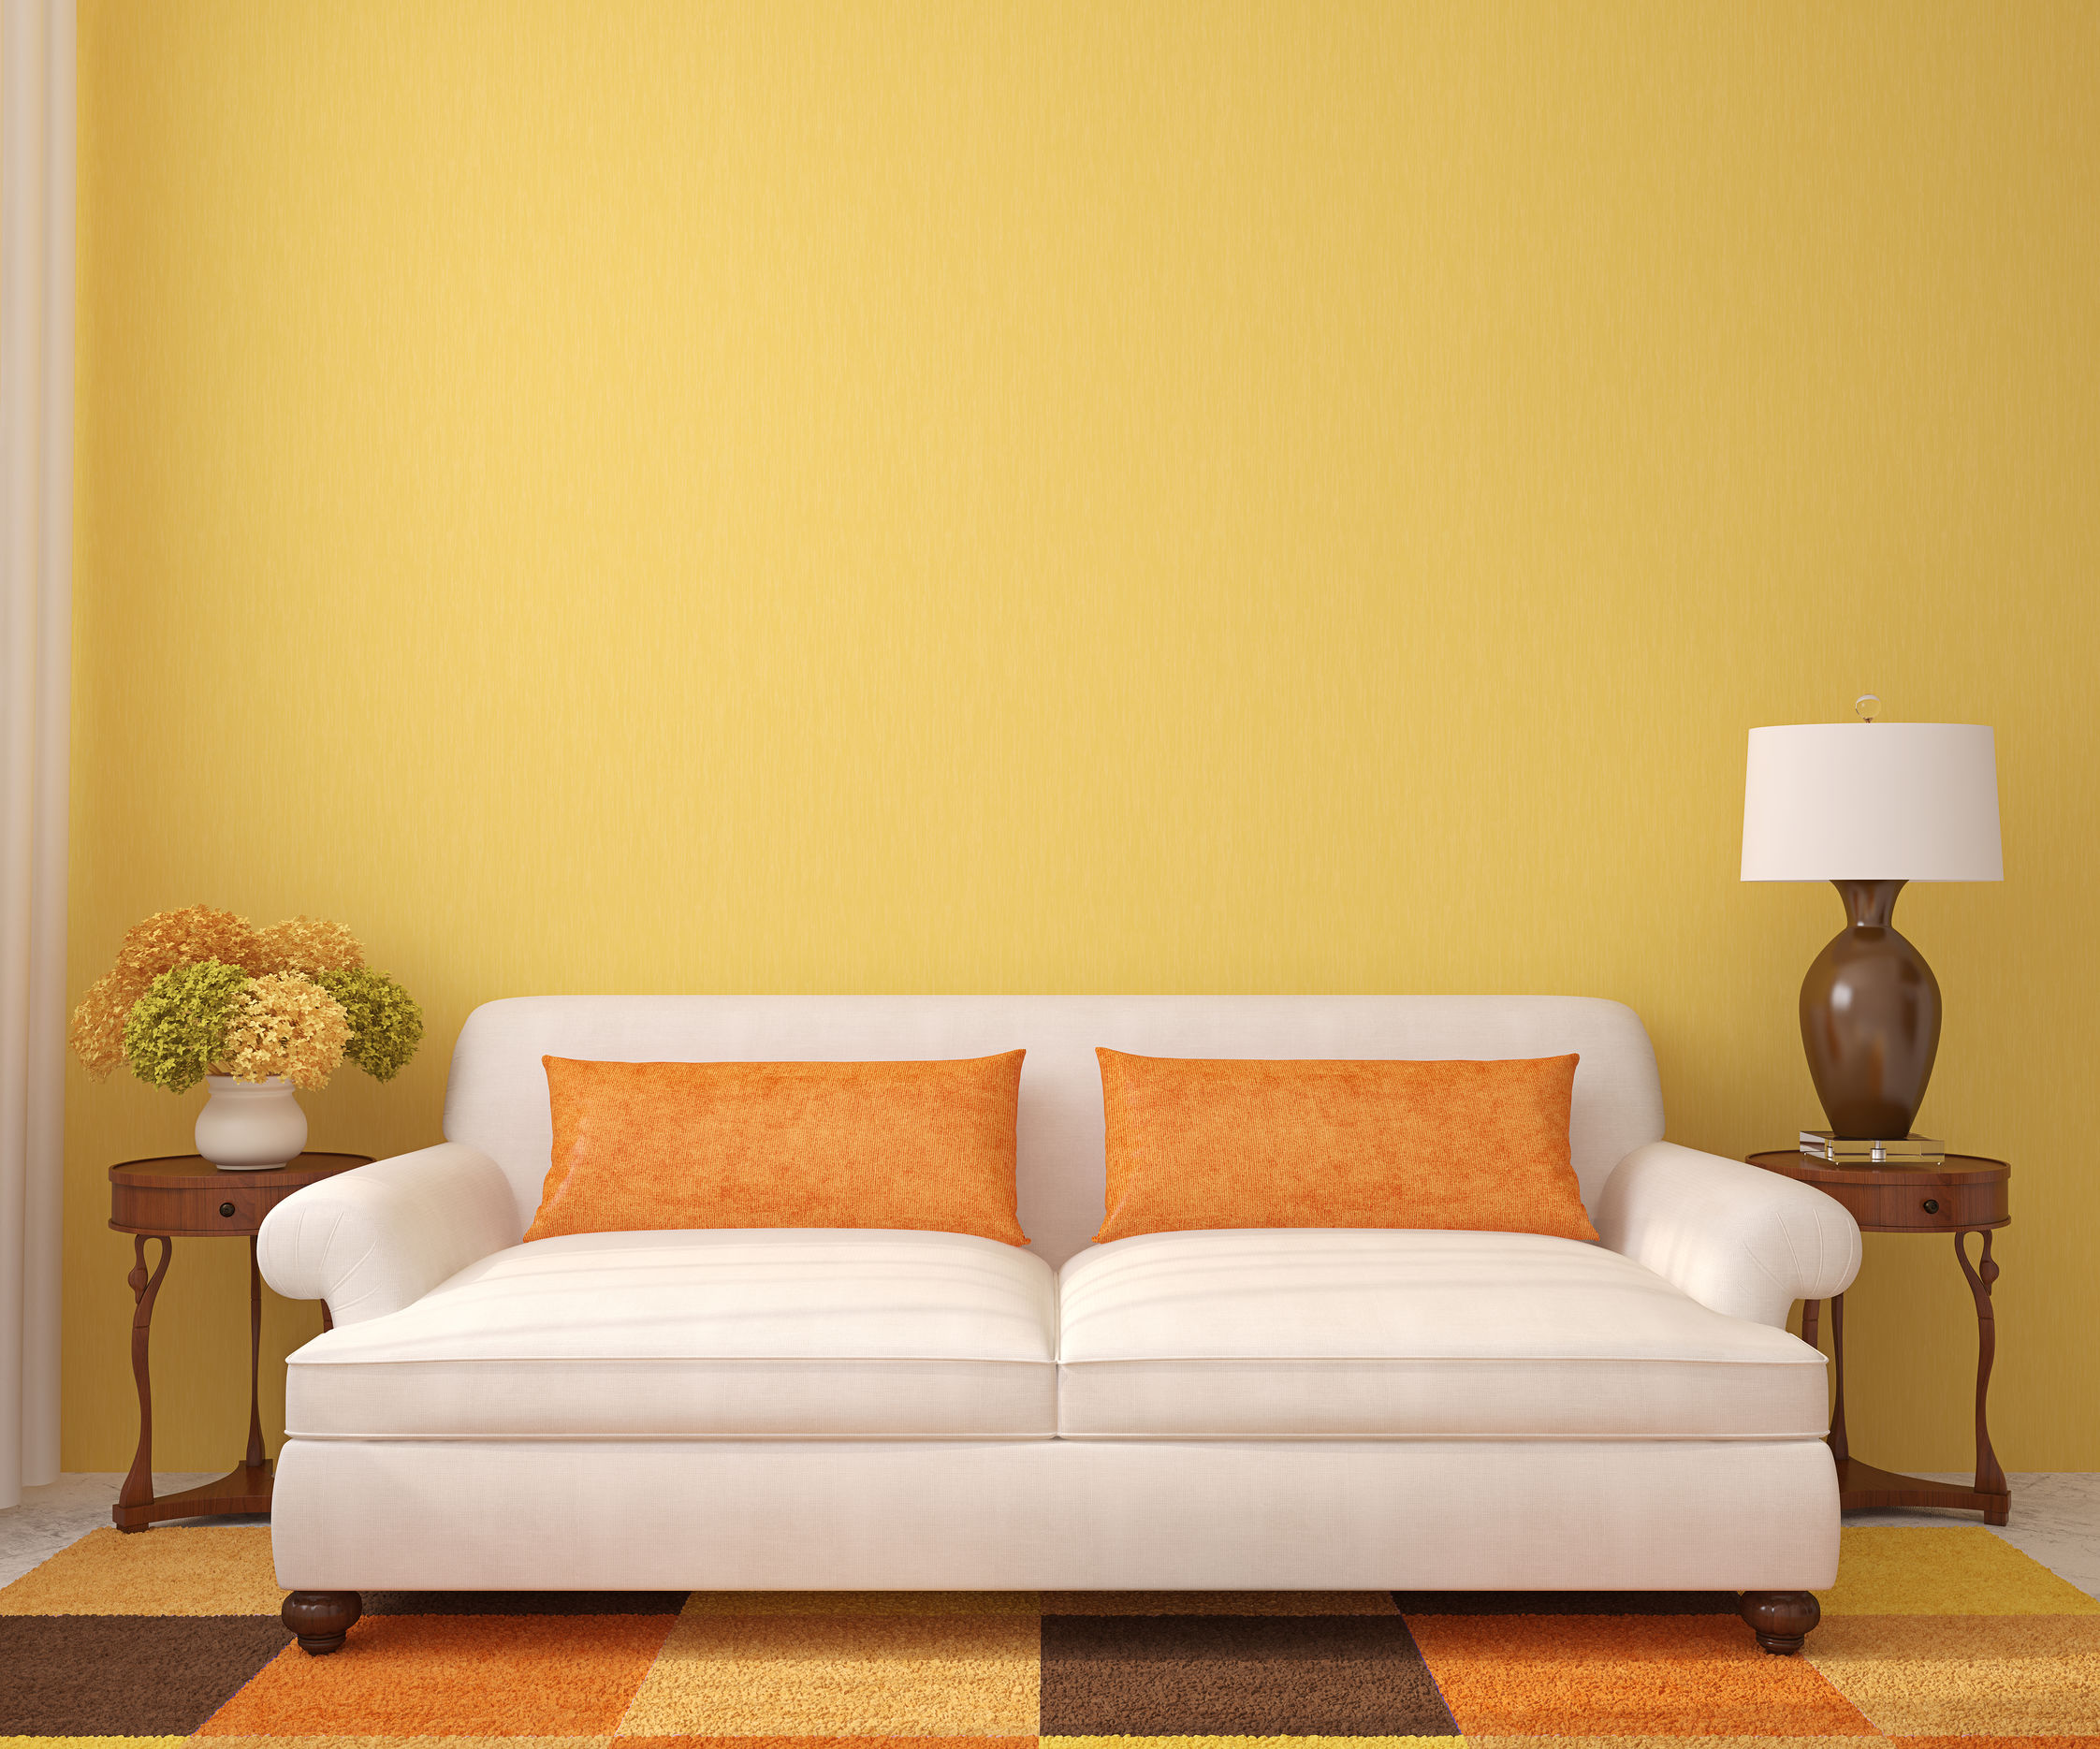 Beautiful living-room with white couch near empty yellow wall